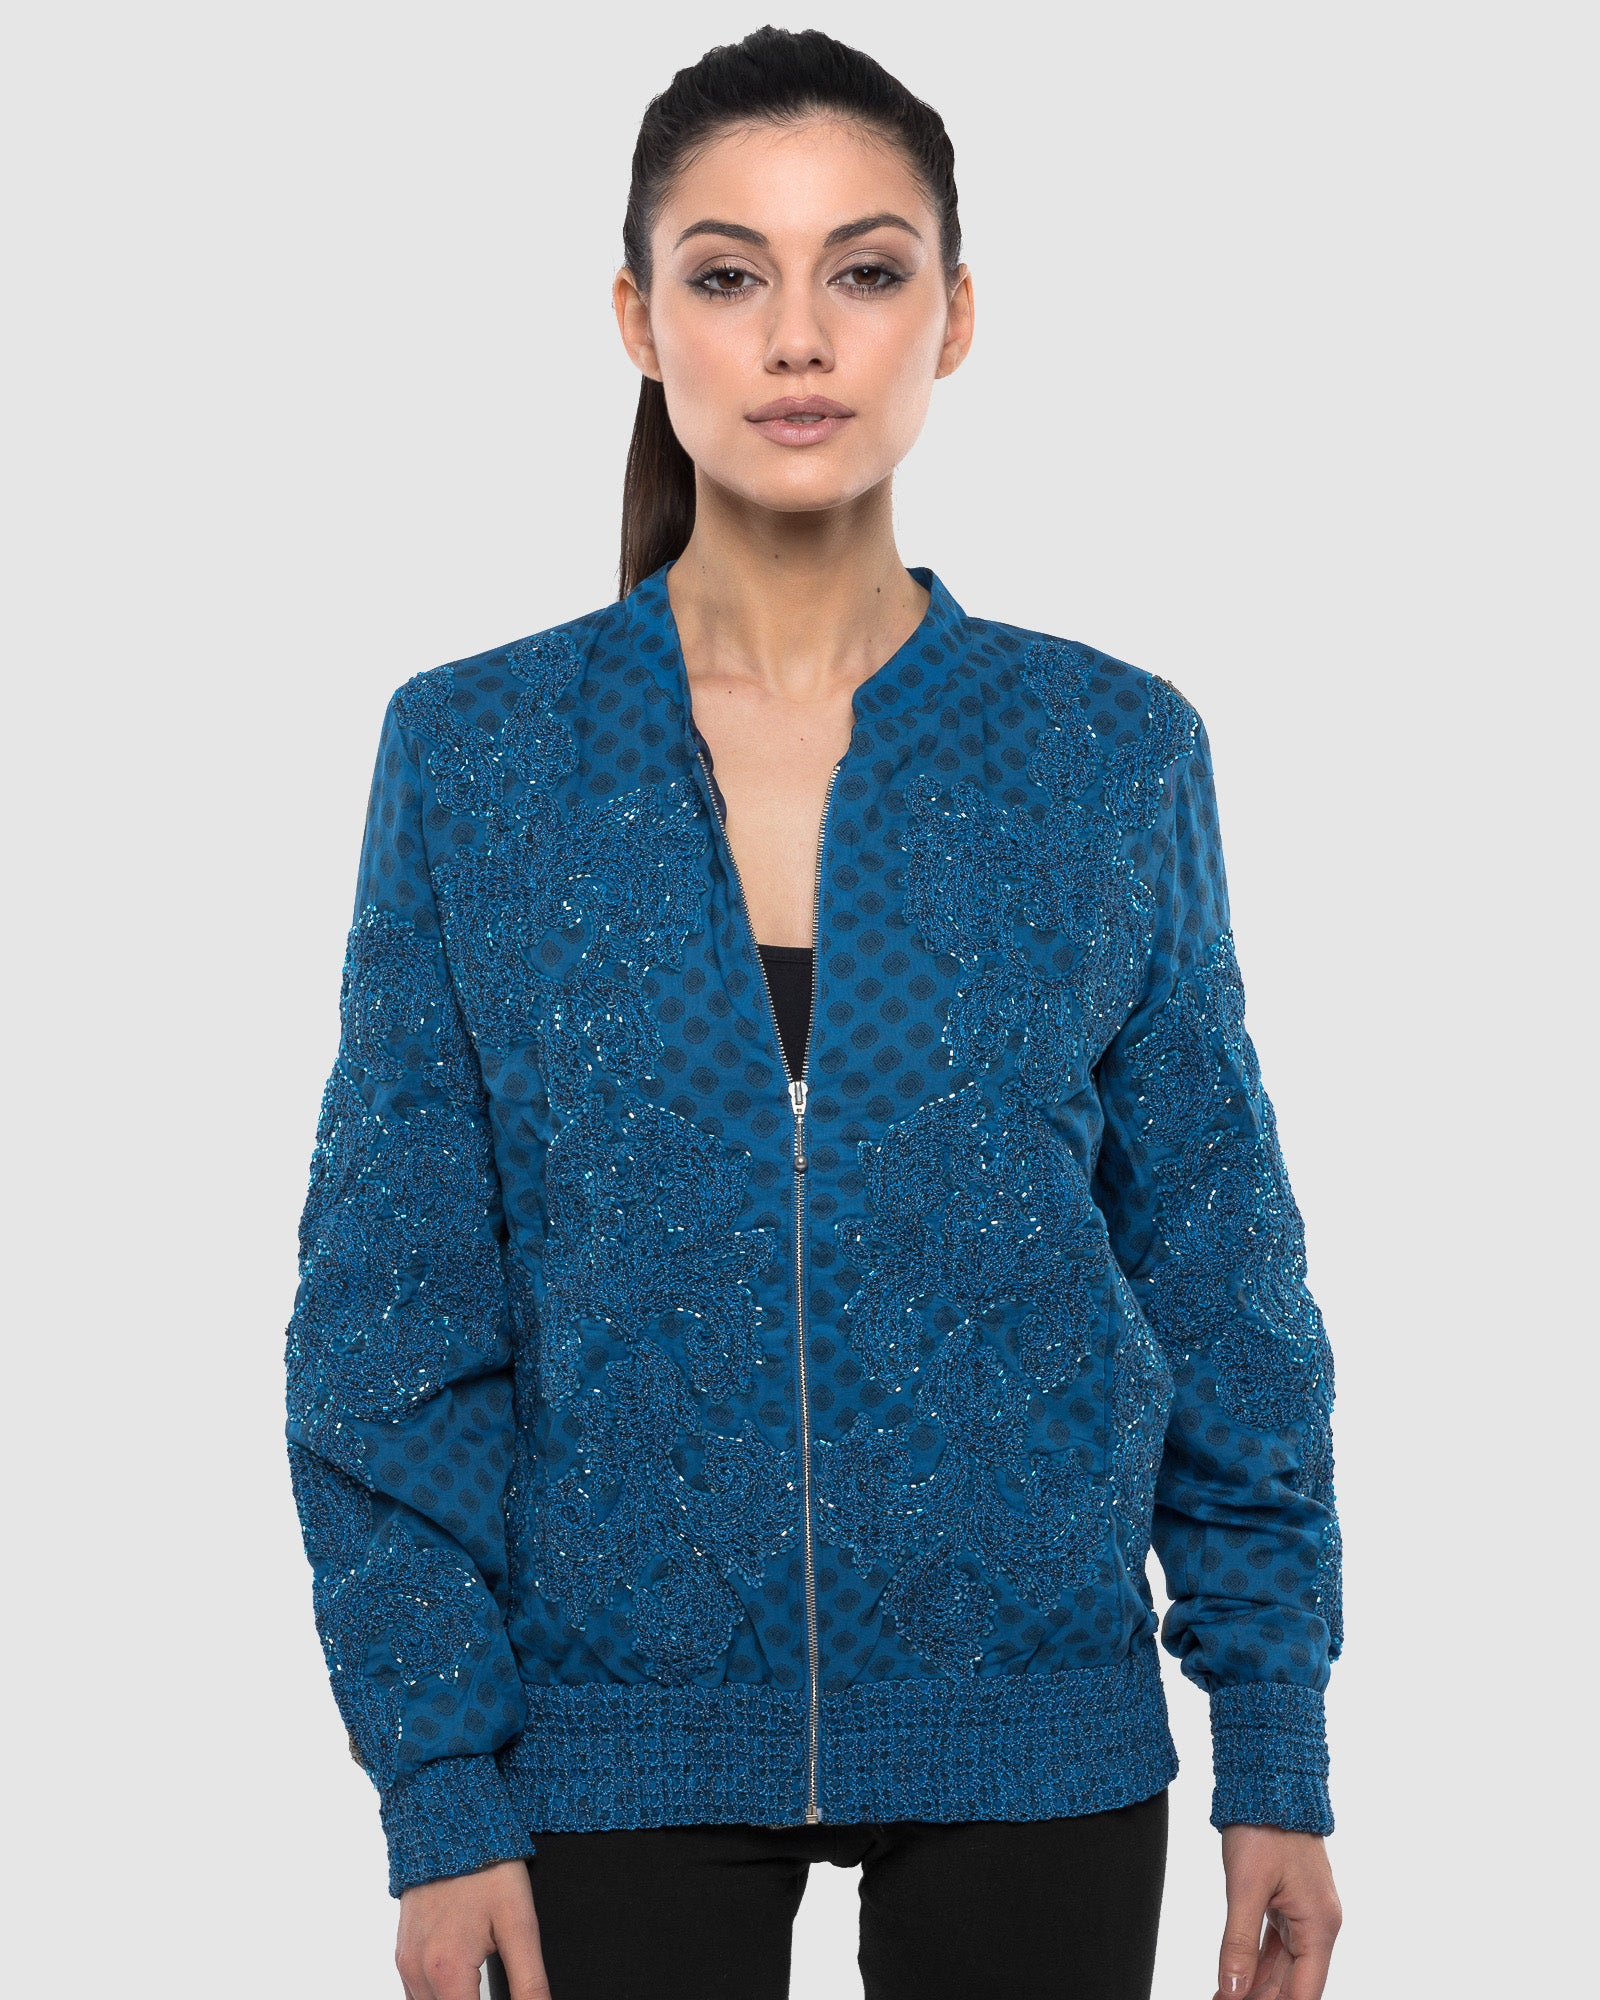 BLUE EMBROIDERED AND BEADED PRINTED BOMBER JACKET